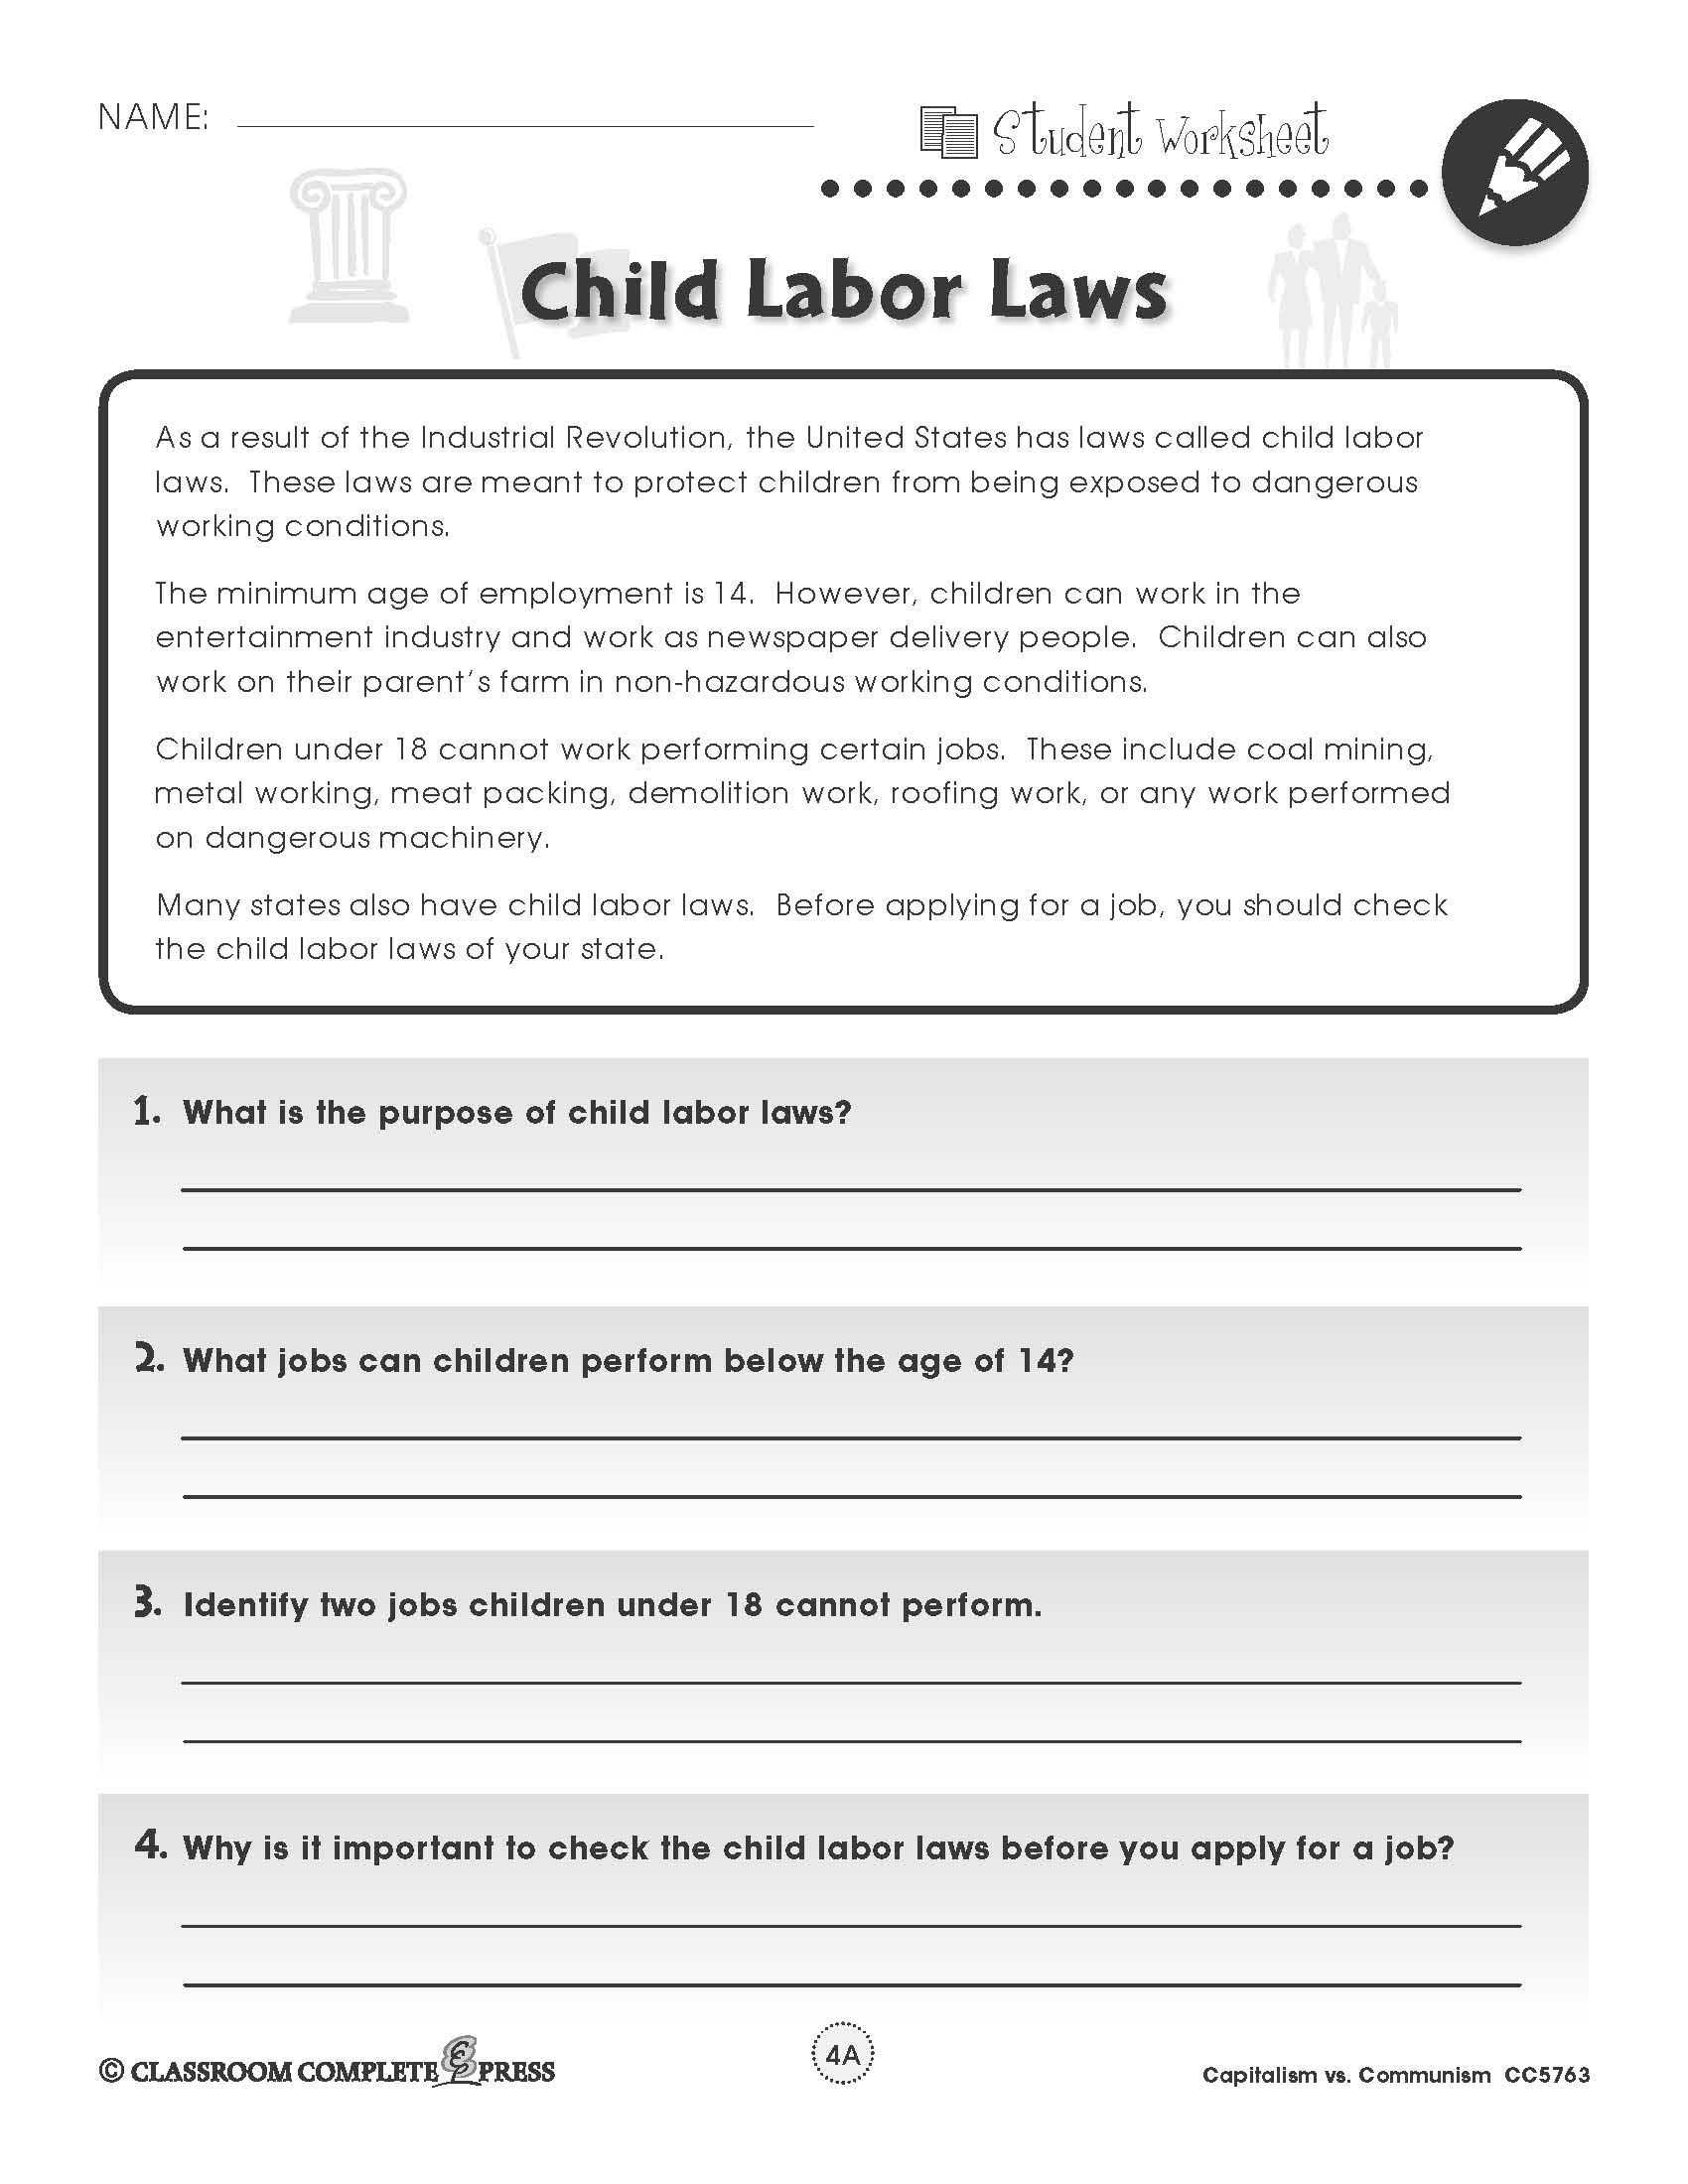 Weaknesses Of the Articles Of Confederation Worksheet as Well as Learn About Child Labor Laws In the U S In This Free Activity From